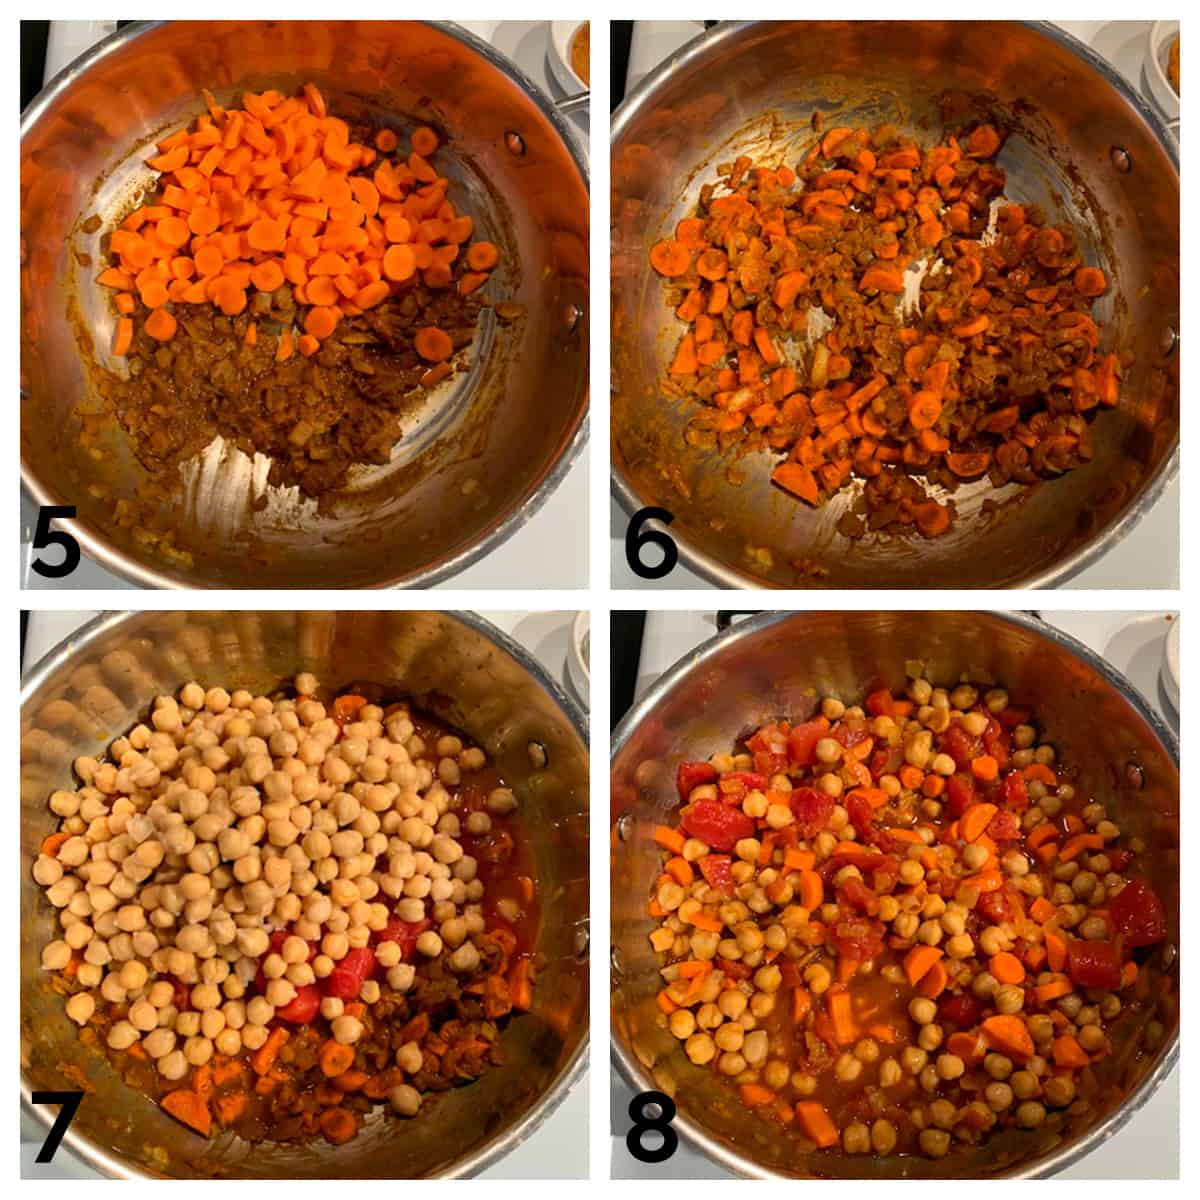 4 photo collage of adding carrots, chickpeas, and tomatoes to create the stew.